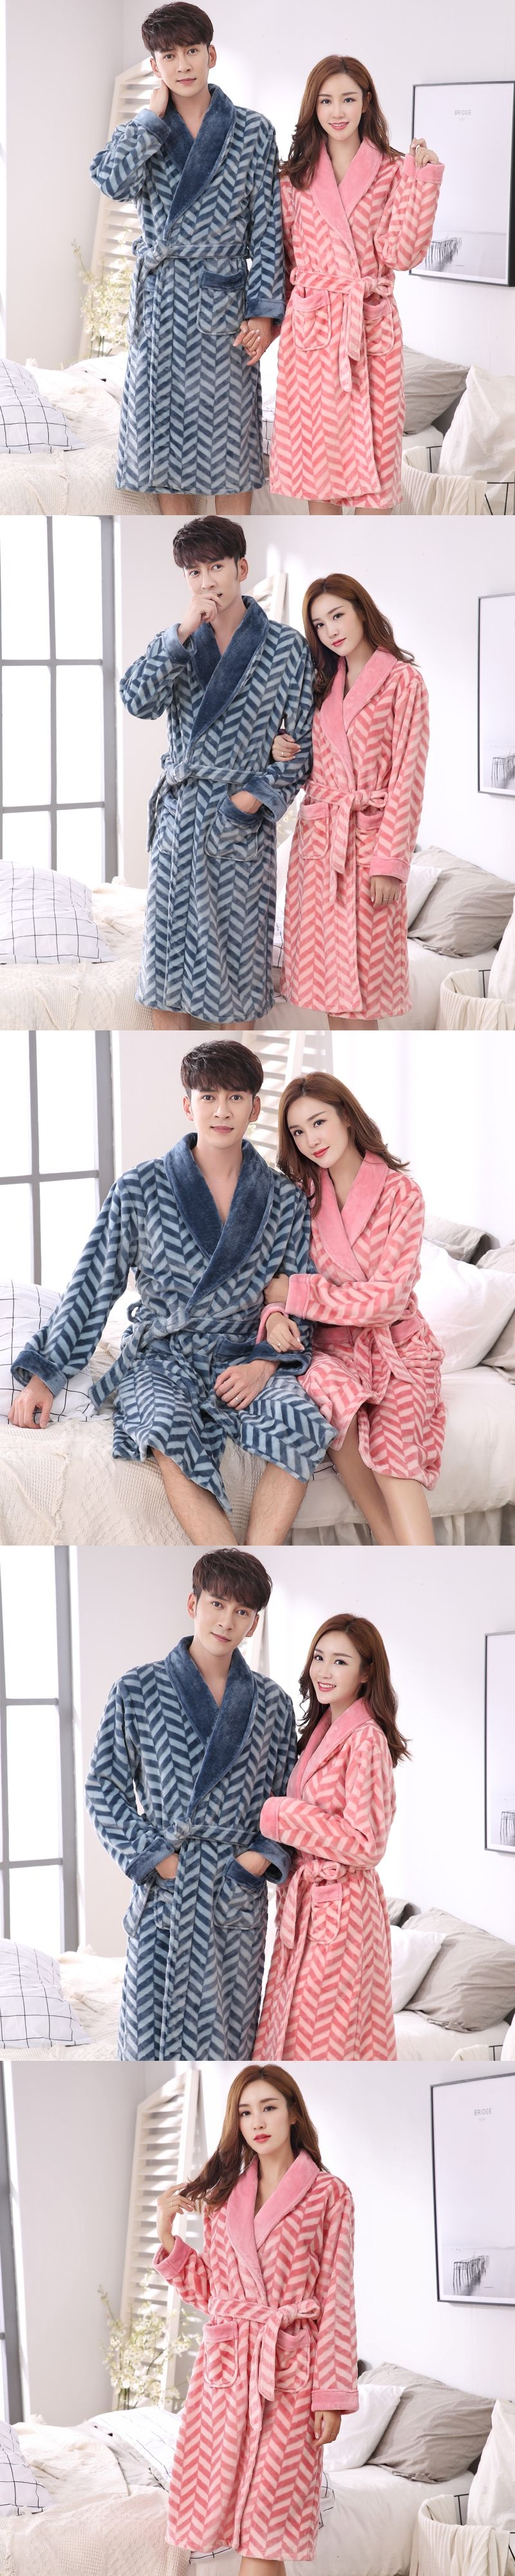 Lovers robe autumn and winter long-sleeve women s coral fleece bathrobe  warm flannel thickening male 9742e3f38